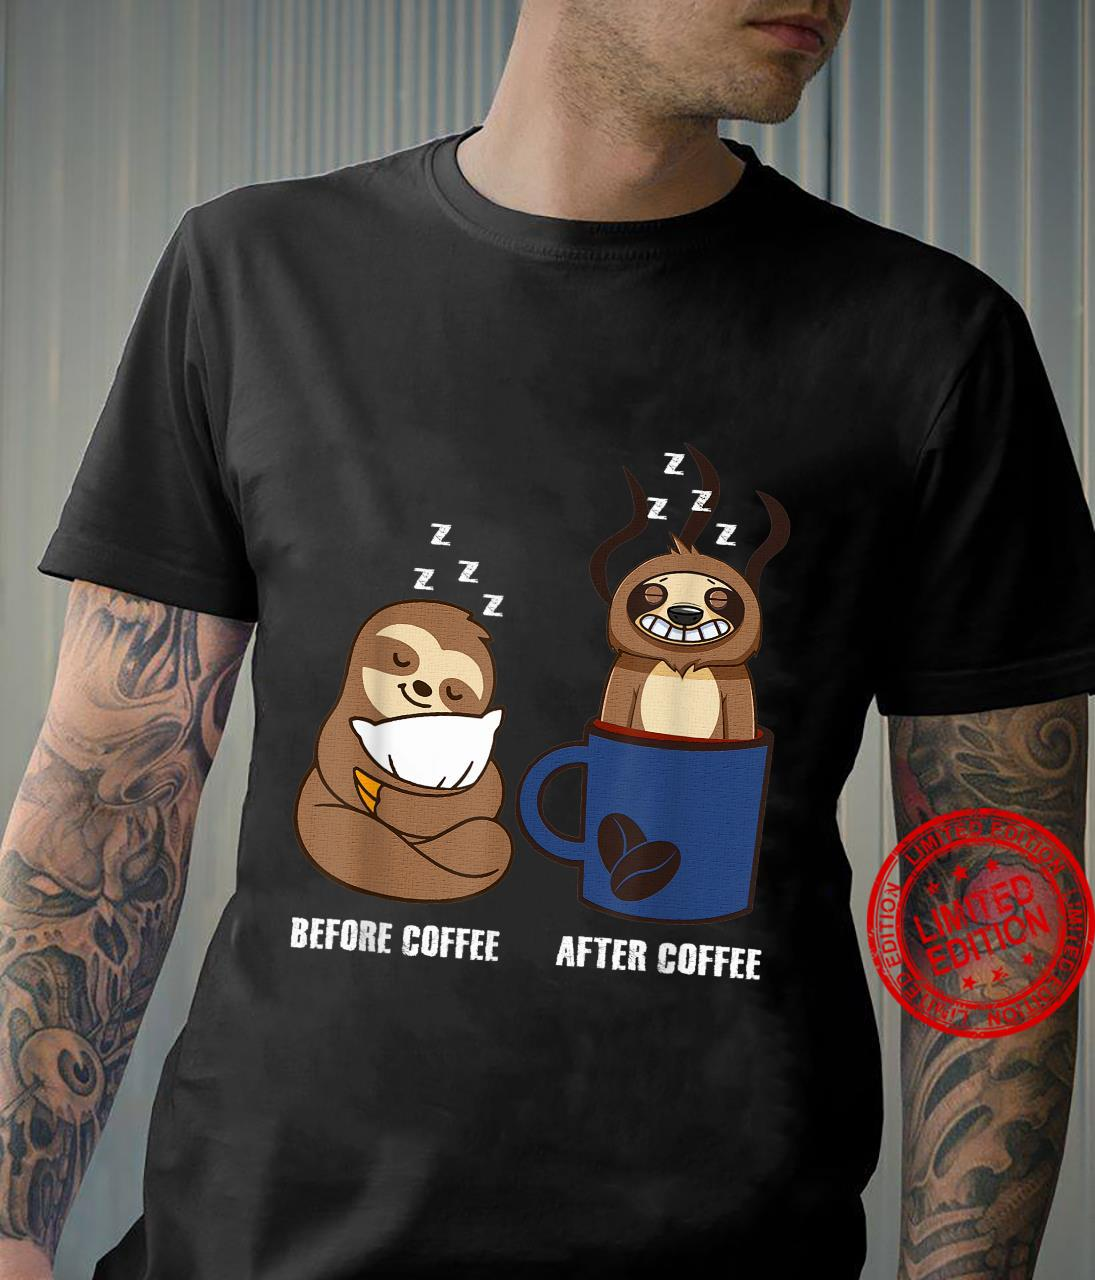 Sloth turned up in the mug Before Coffee after coffee Shirt